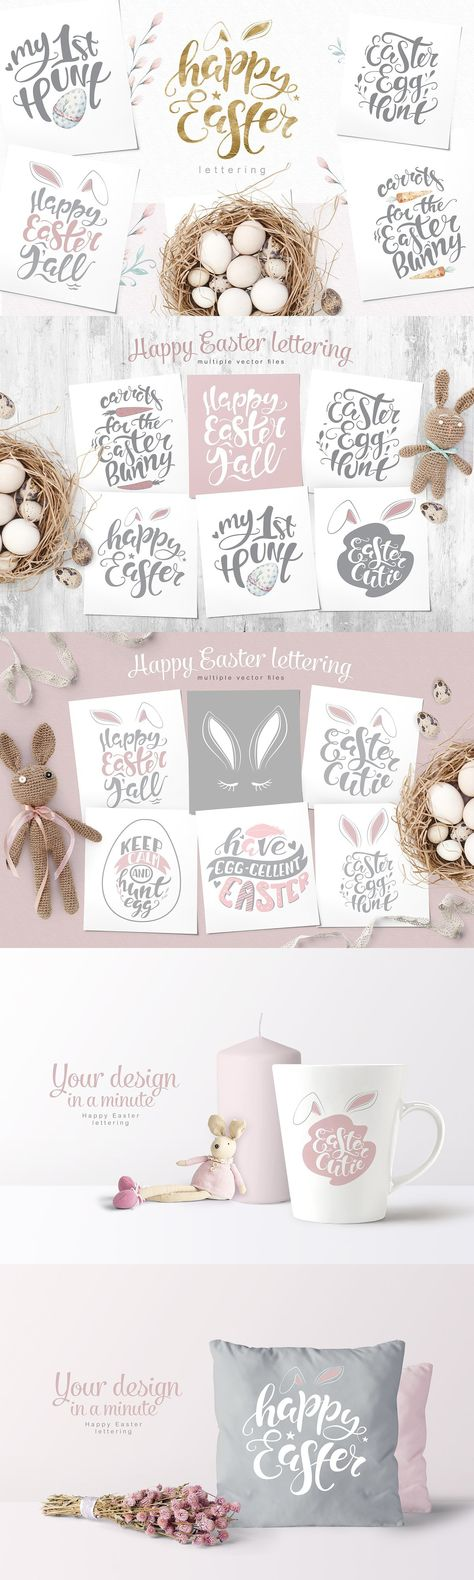 Happy Easter quote overlay!